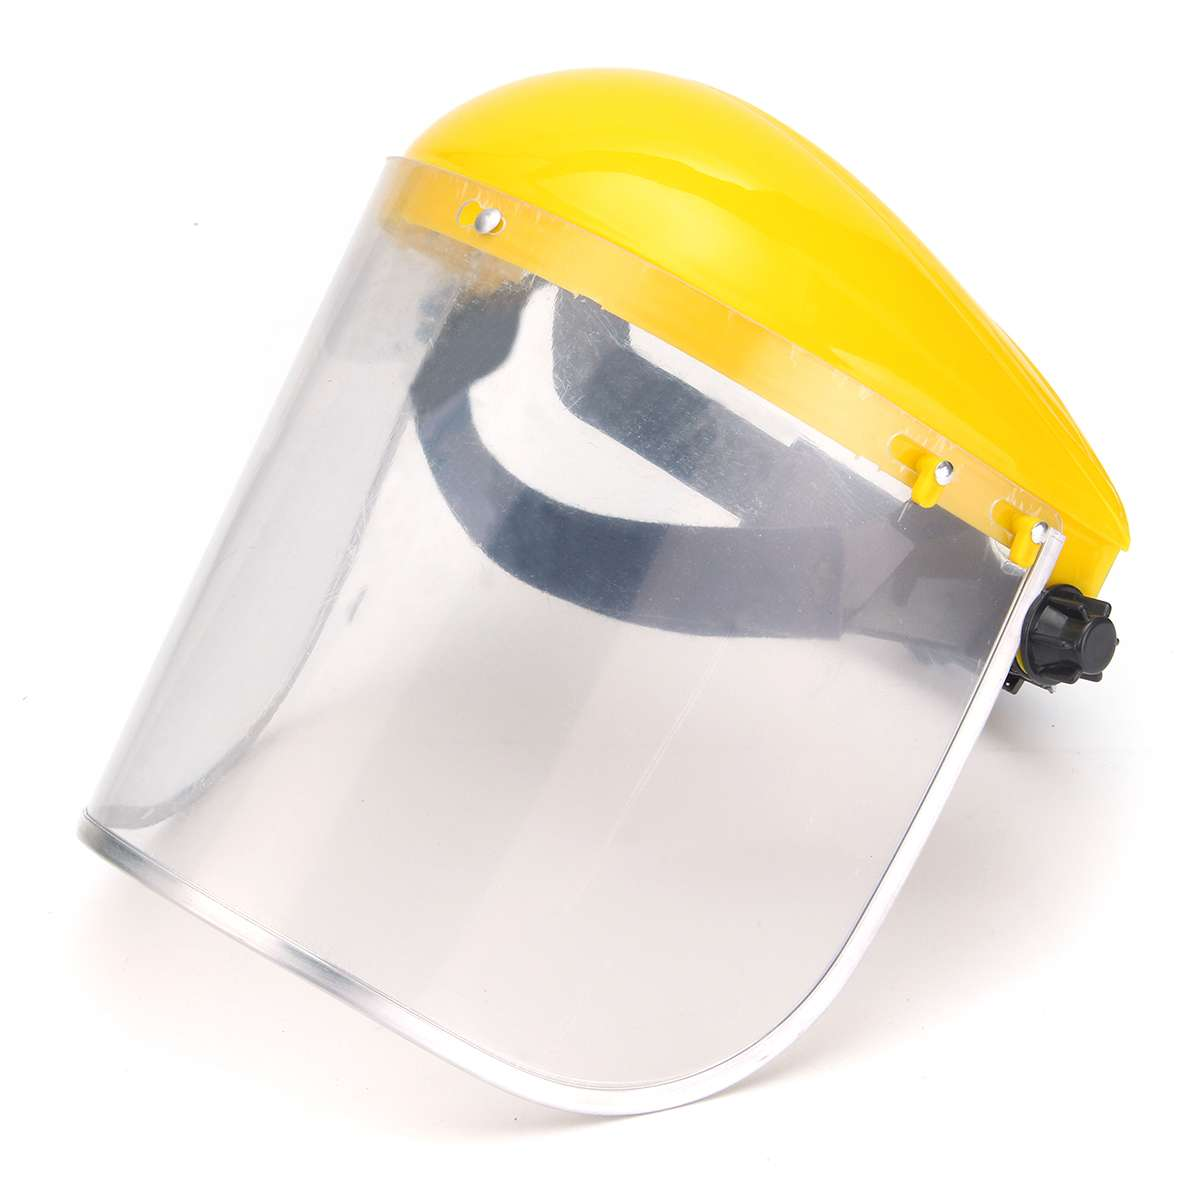 New Transparent Clear Grinding Safety Face Shield Screen Mask Visors For Eye Face-Protection Face Shield Solder-MaskNew Transparent Clear Grinding Safety Face Shield Screen Mask Visors For Eye Face-Protection Face Shield Solder-Mask